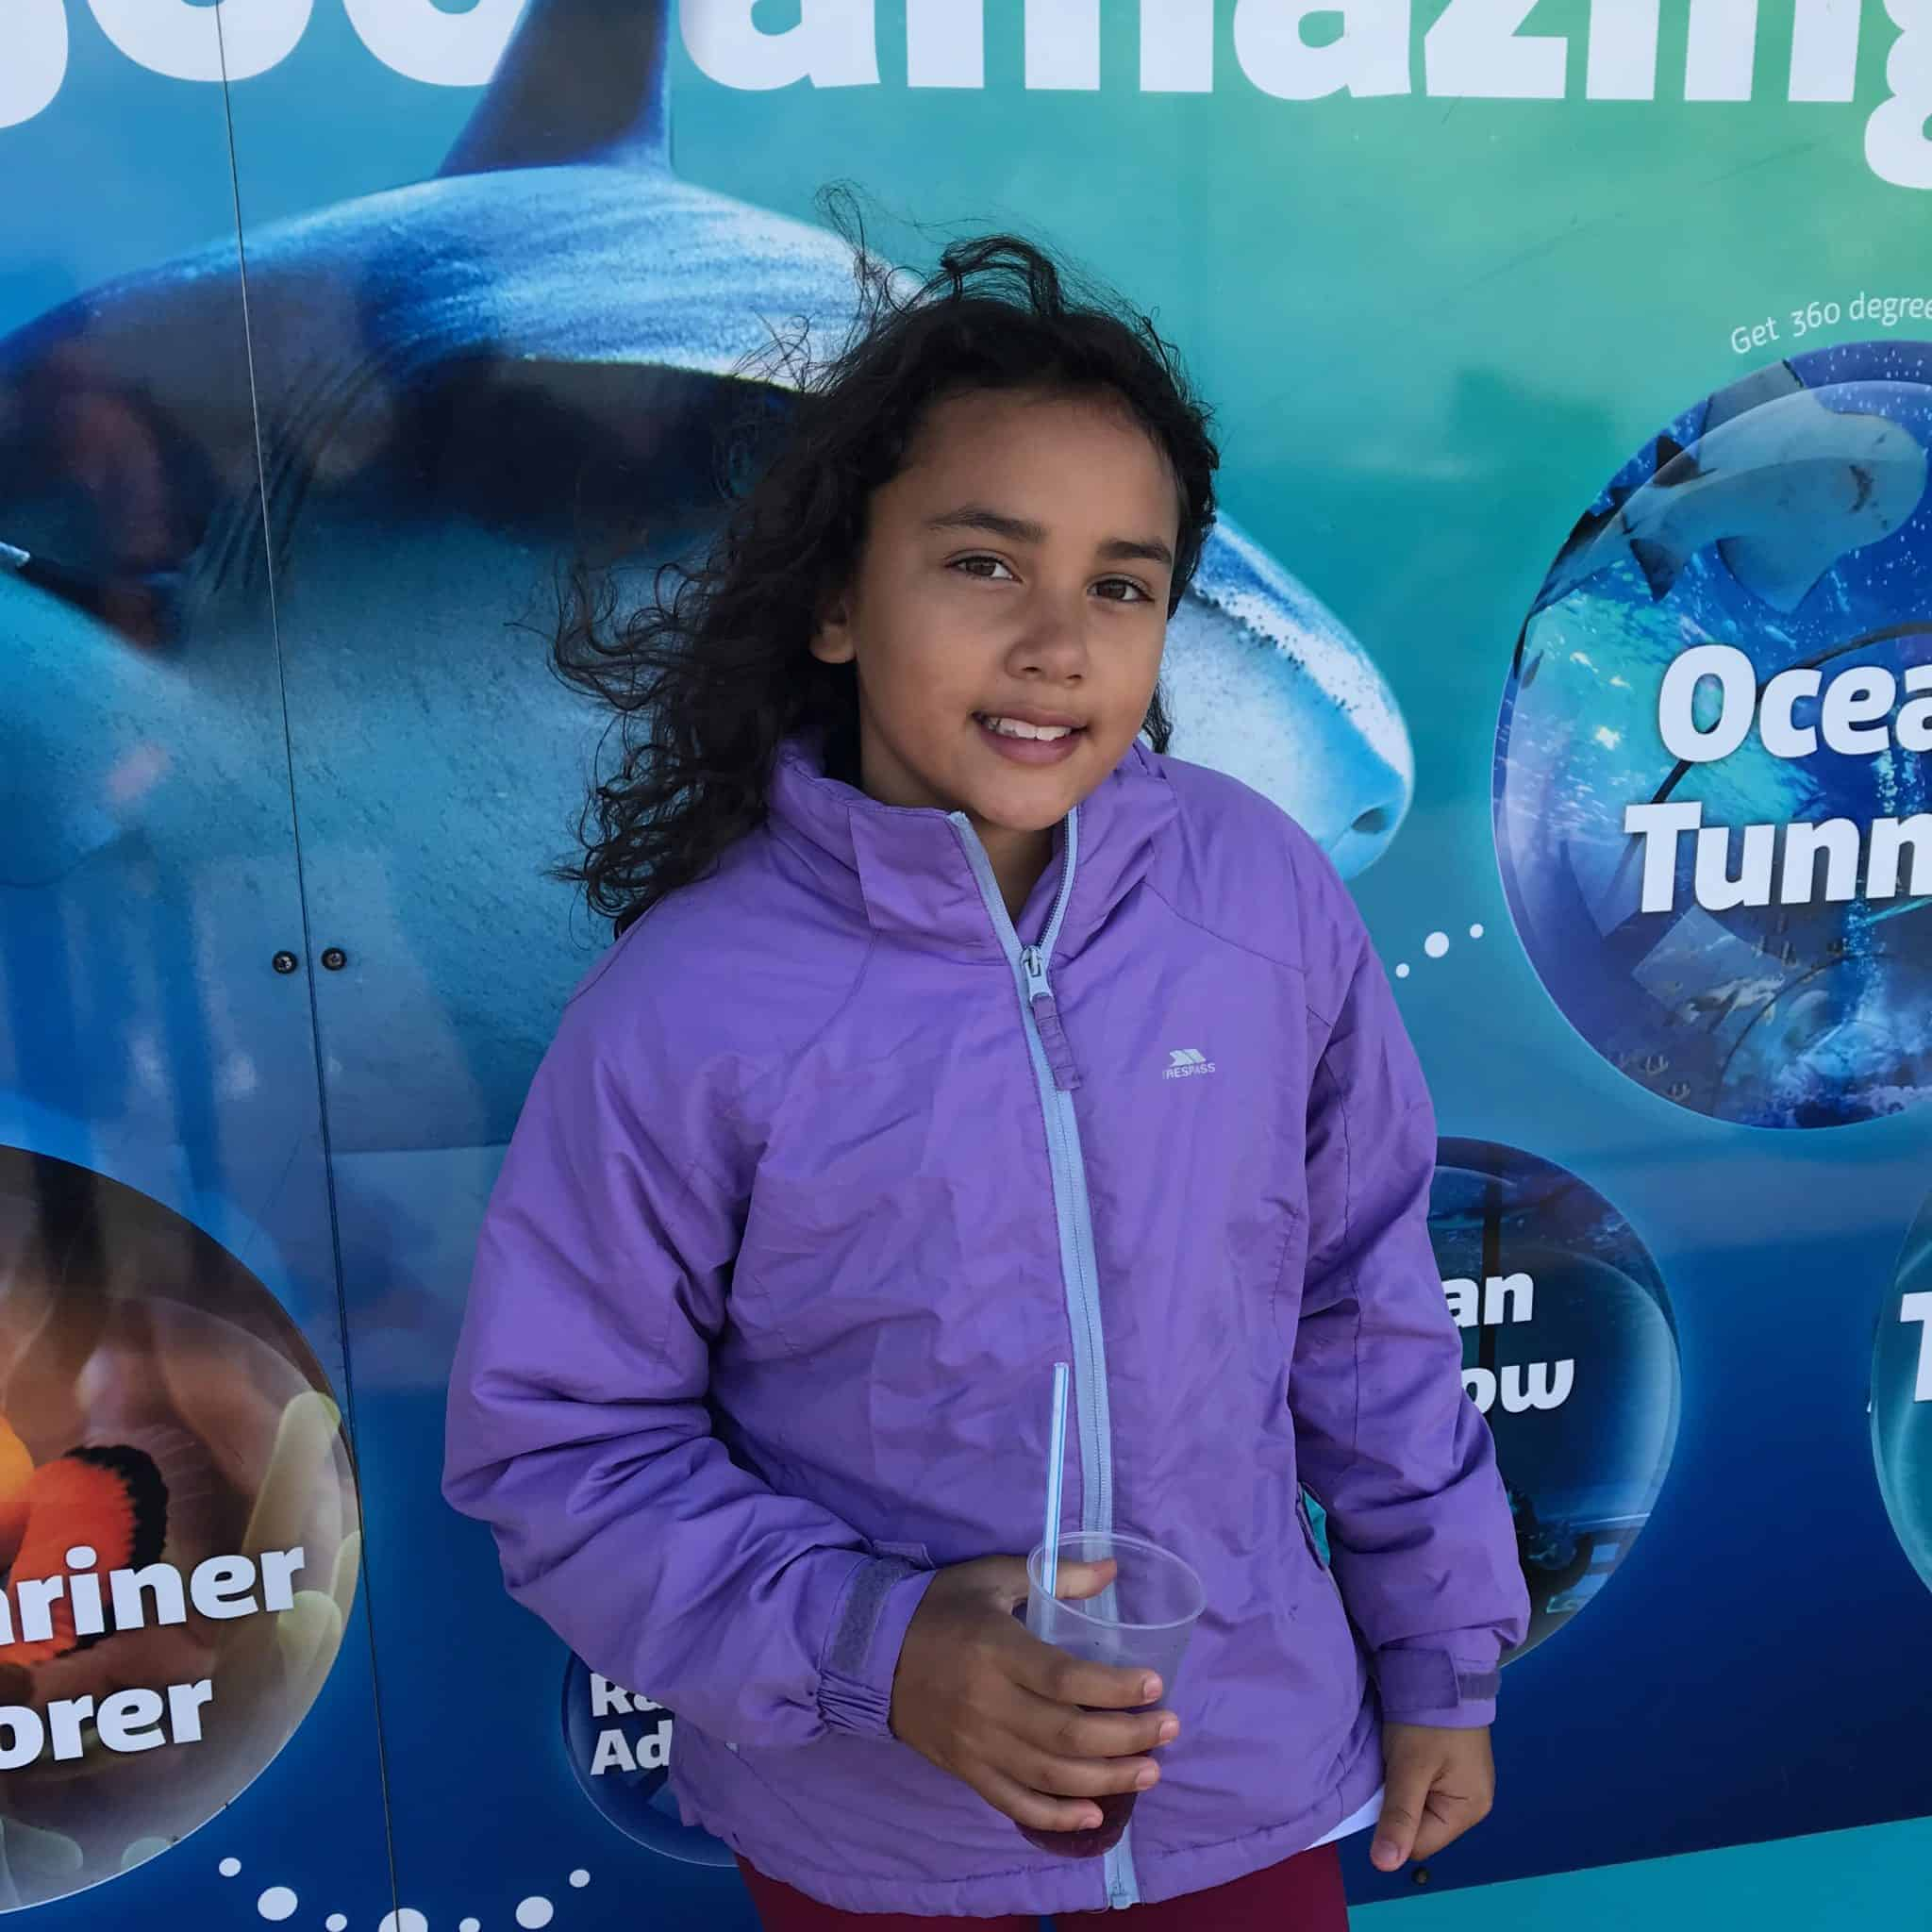 blackpool tower and sealife visits